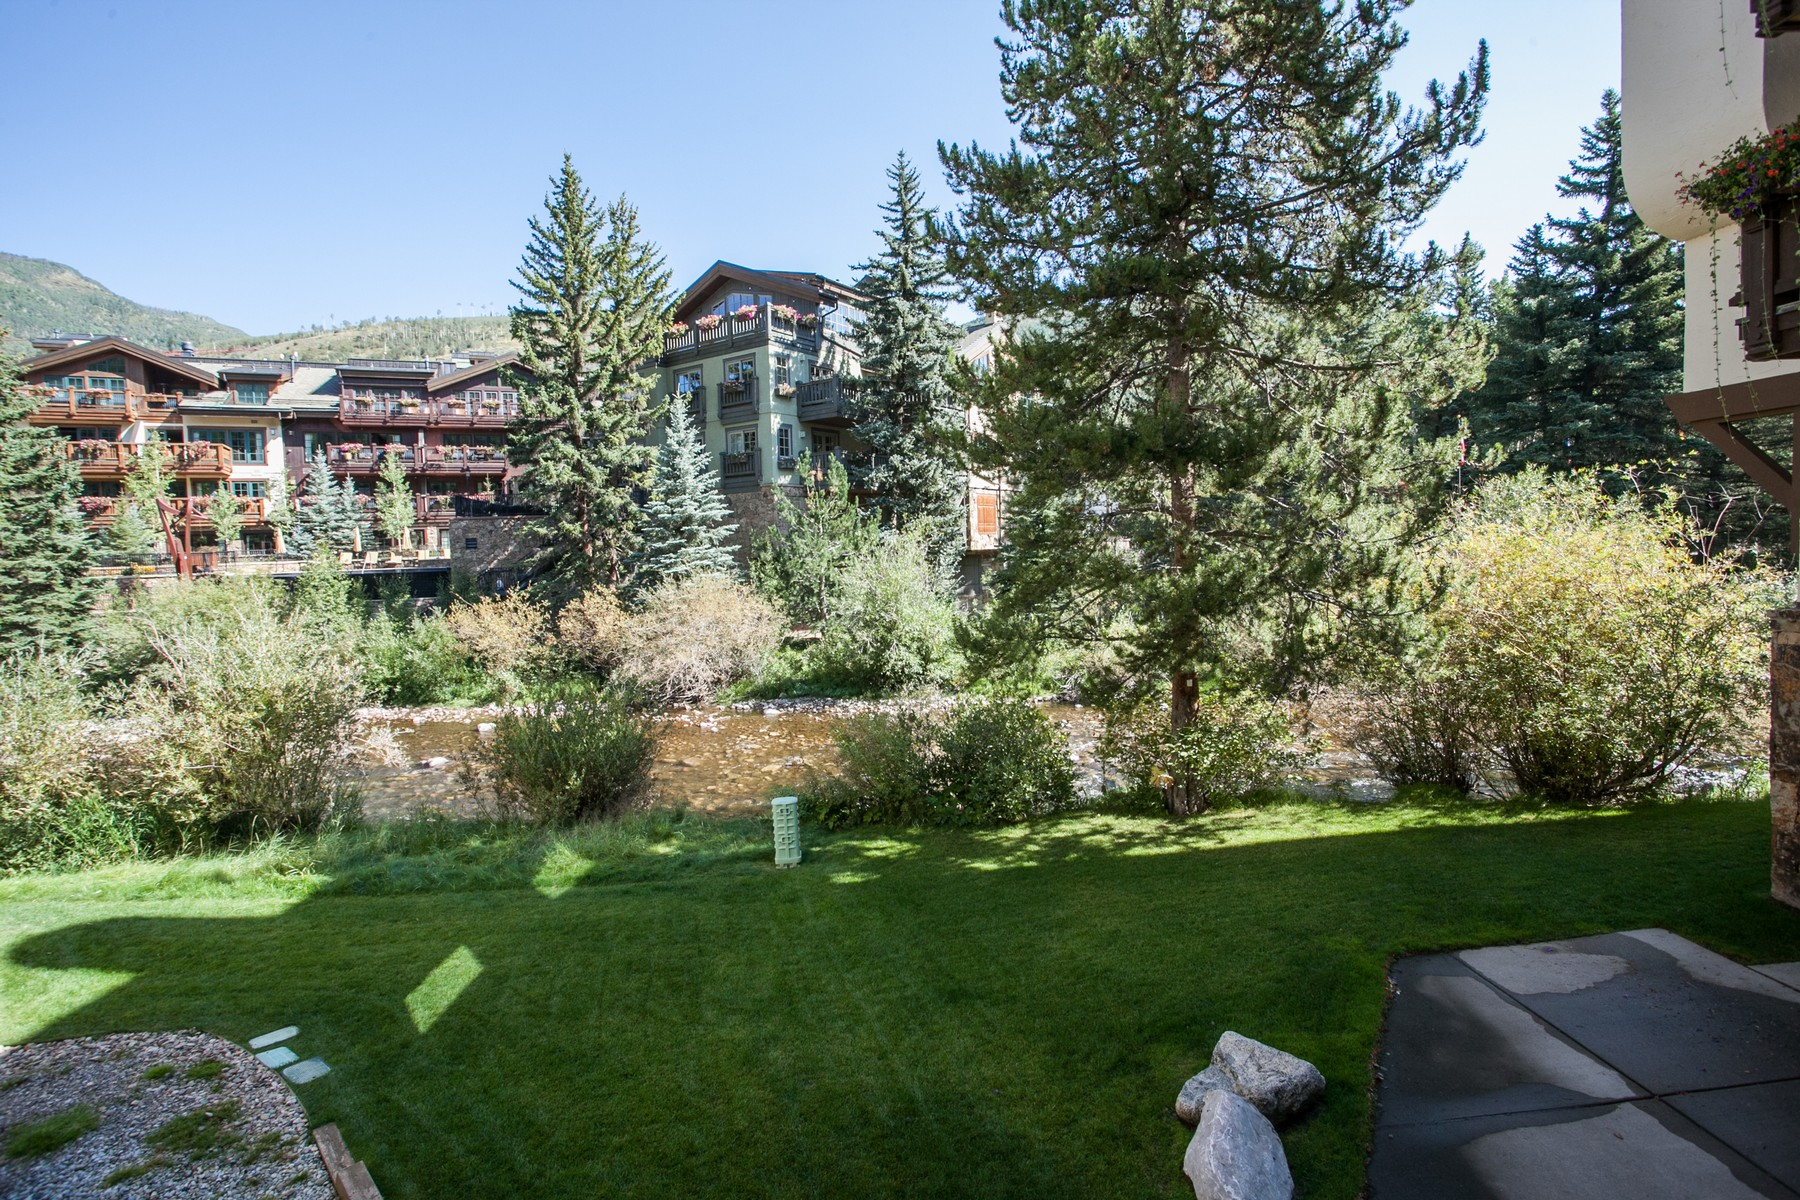 Condomínio para Venda às Riverhouse #1 83 Willow Pl 1 Vail, Colorado, 81657 Estados Unidos